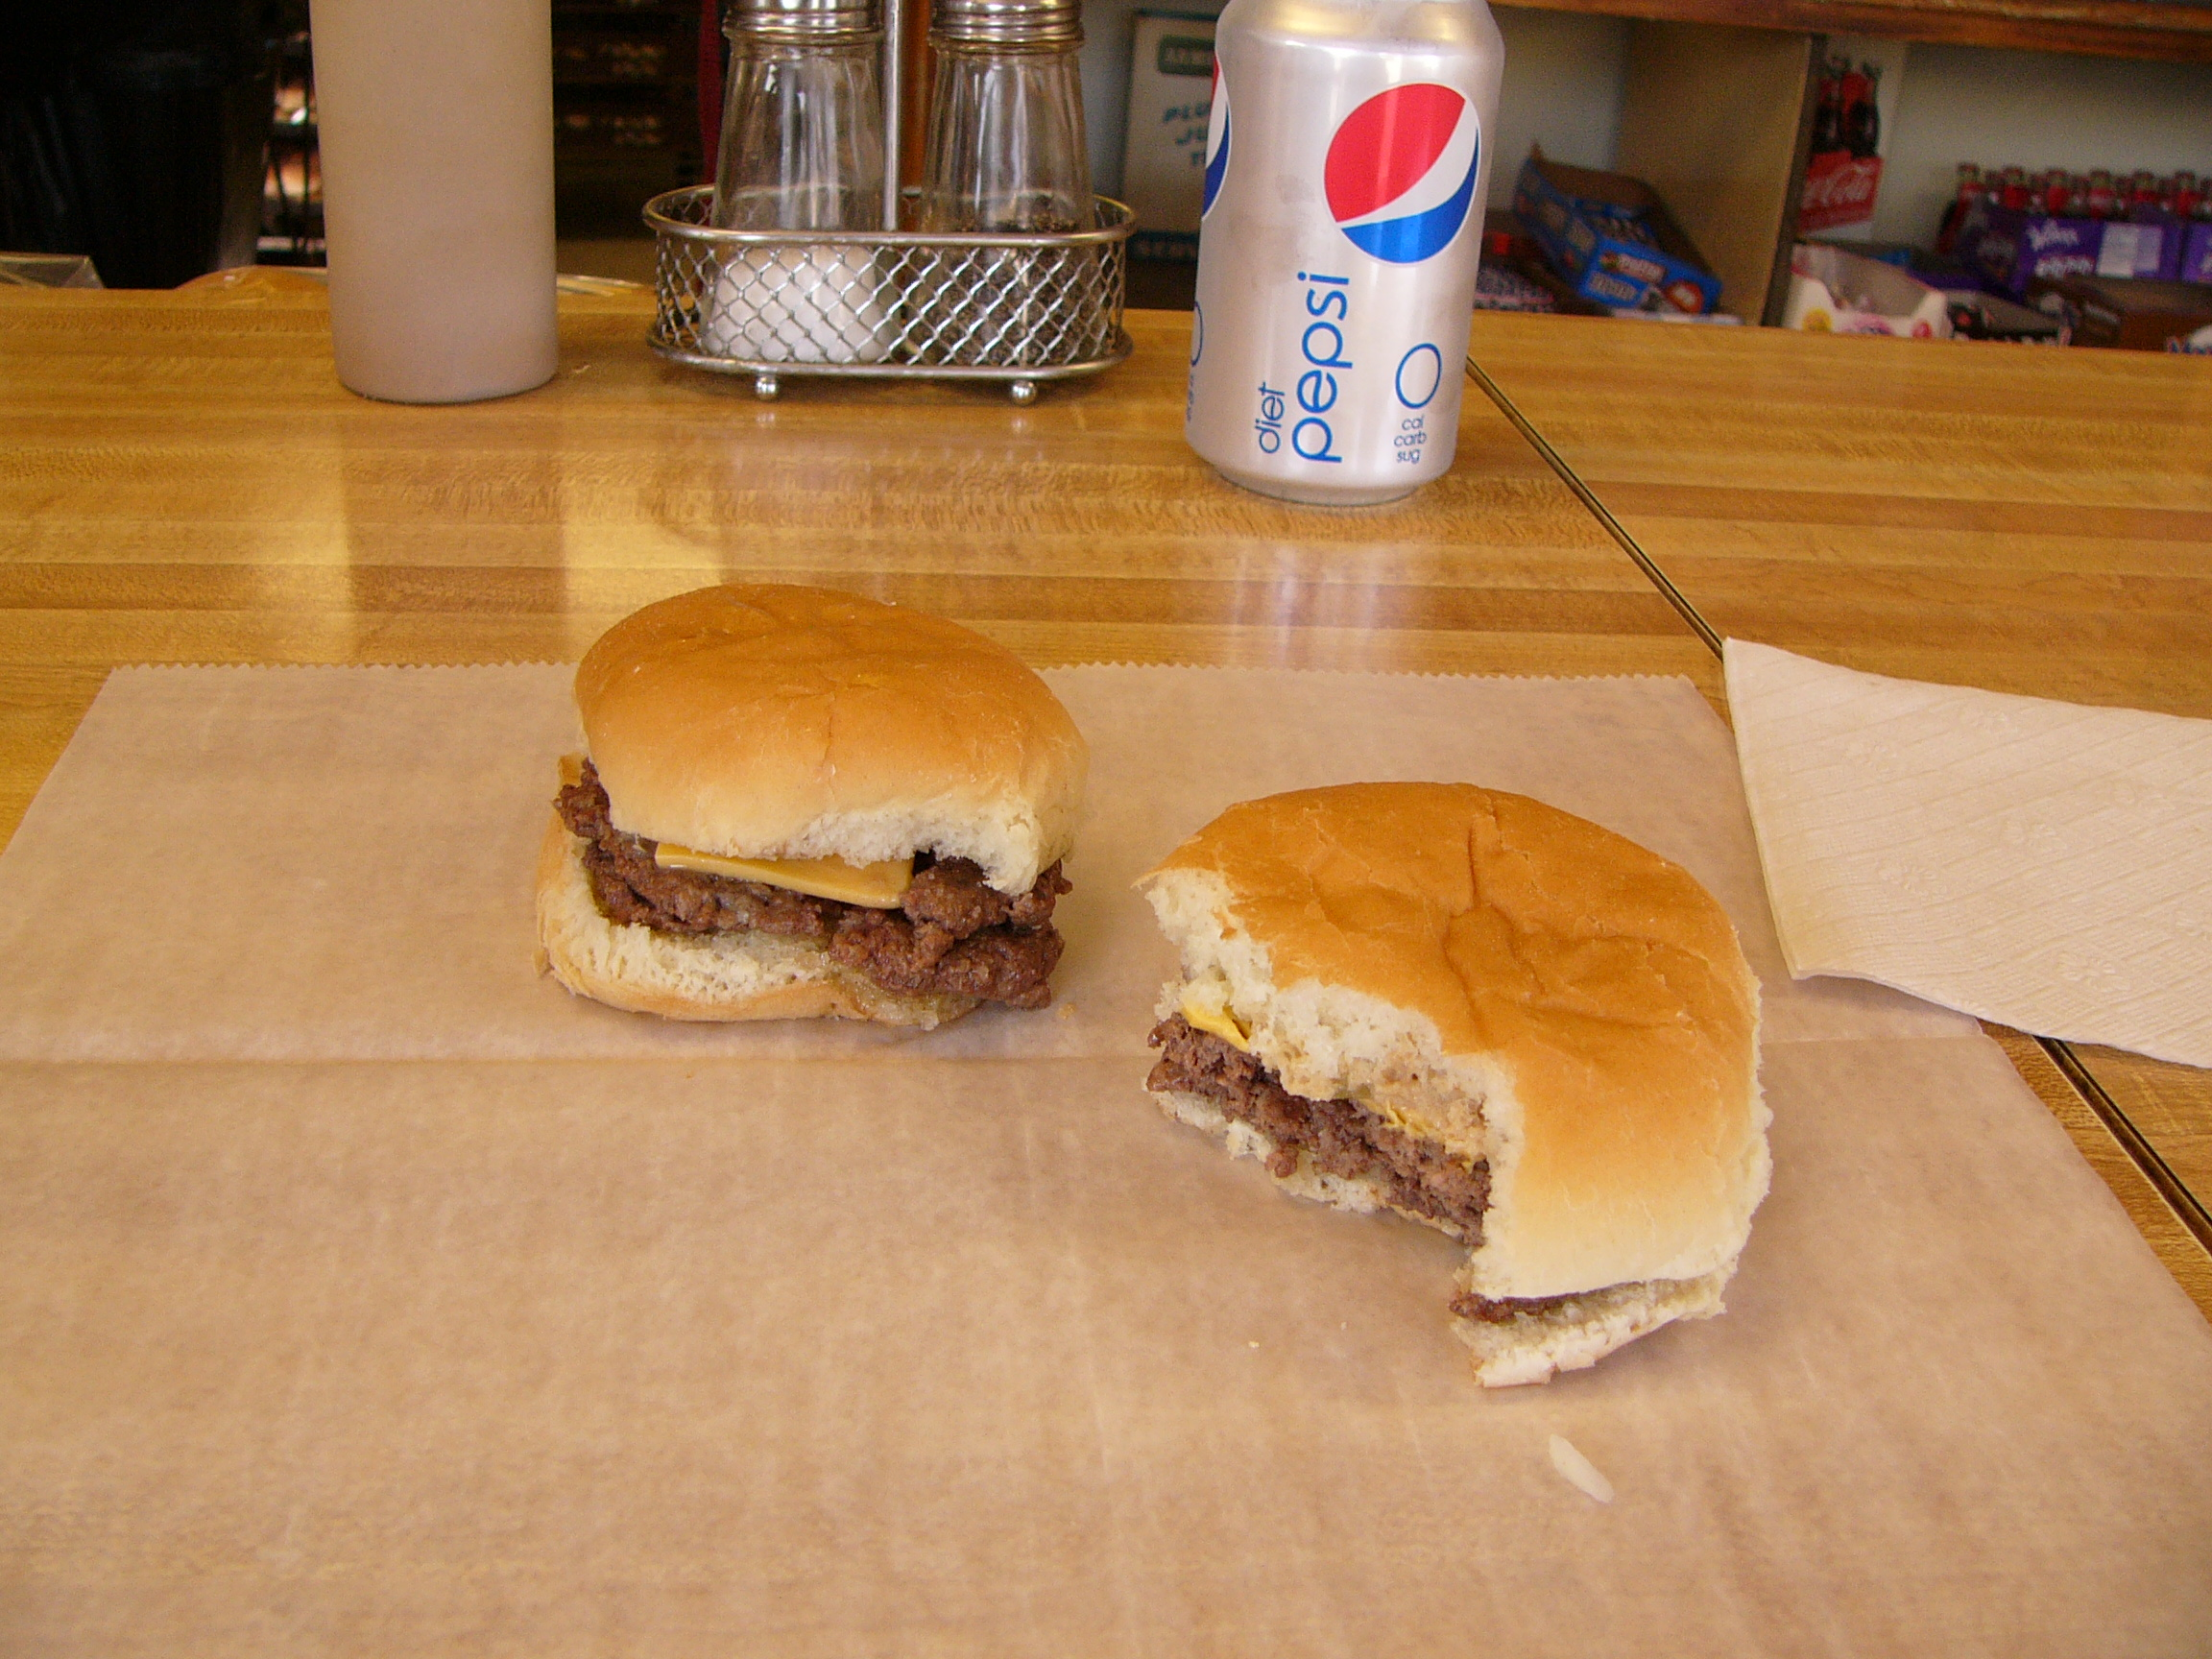 Two Crabill's Hamburgers is not enough.